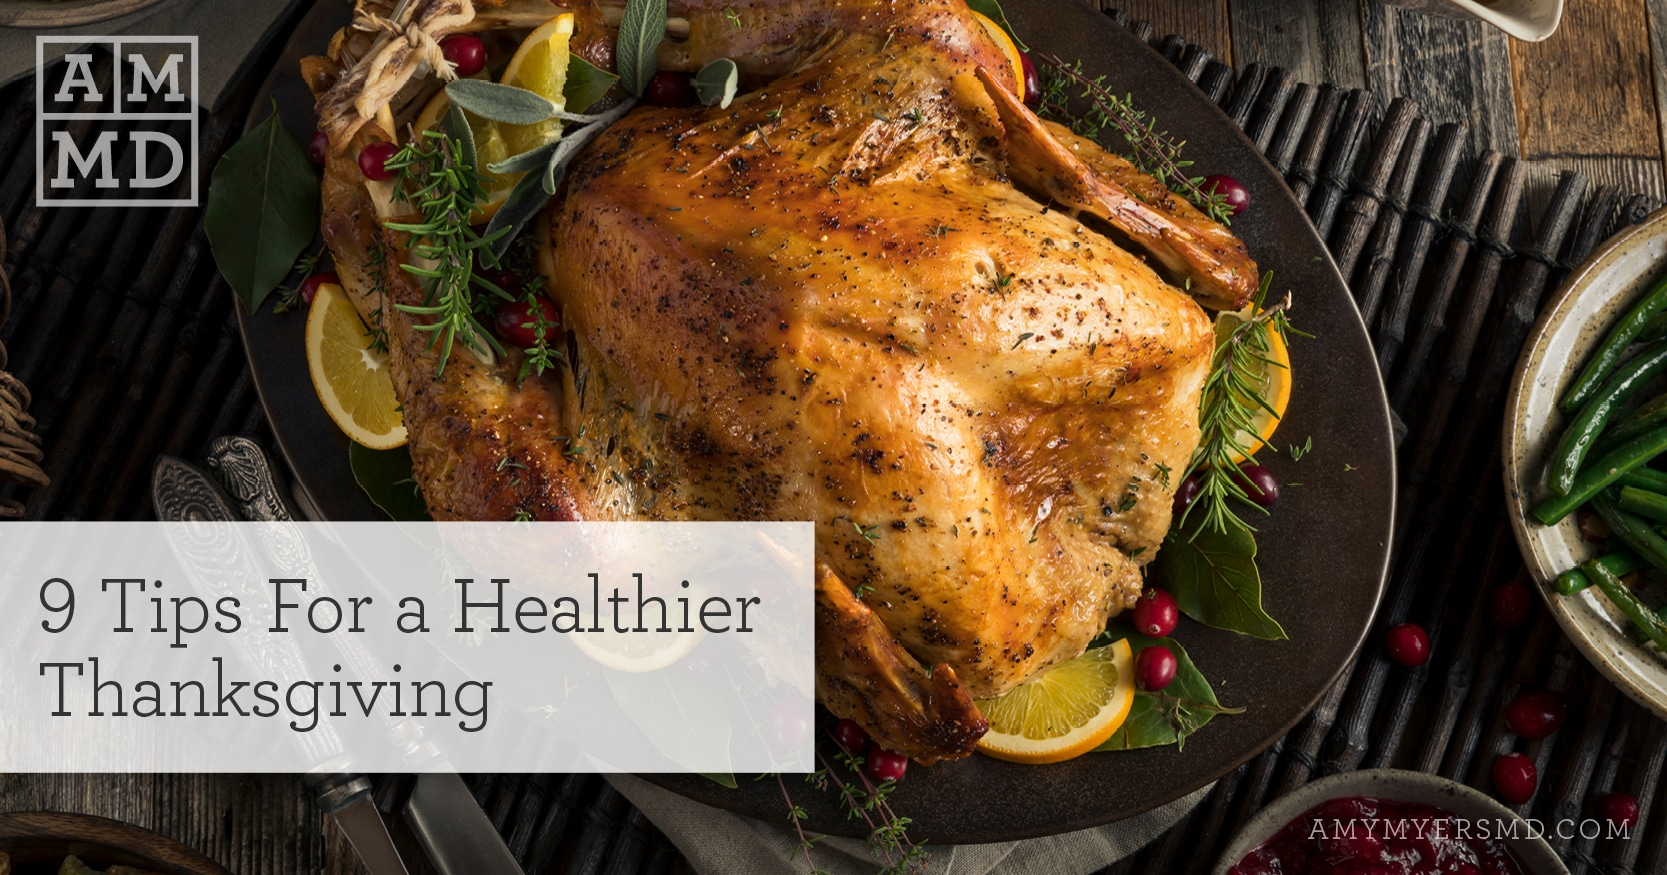 9 Tips For A Healthier Thanksgiving - A Roasted Turkey on the Table - Featured Image - Amy Myers MD